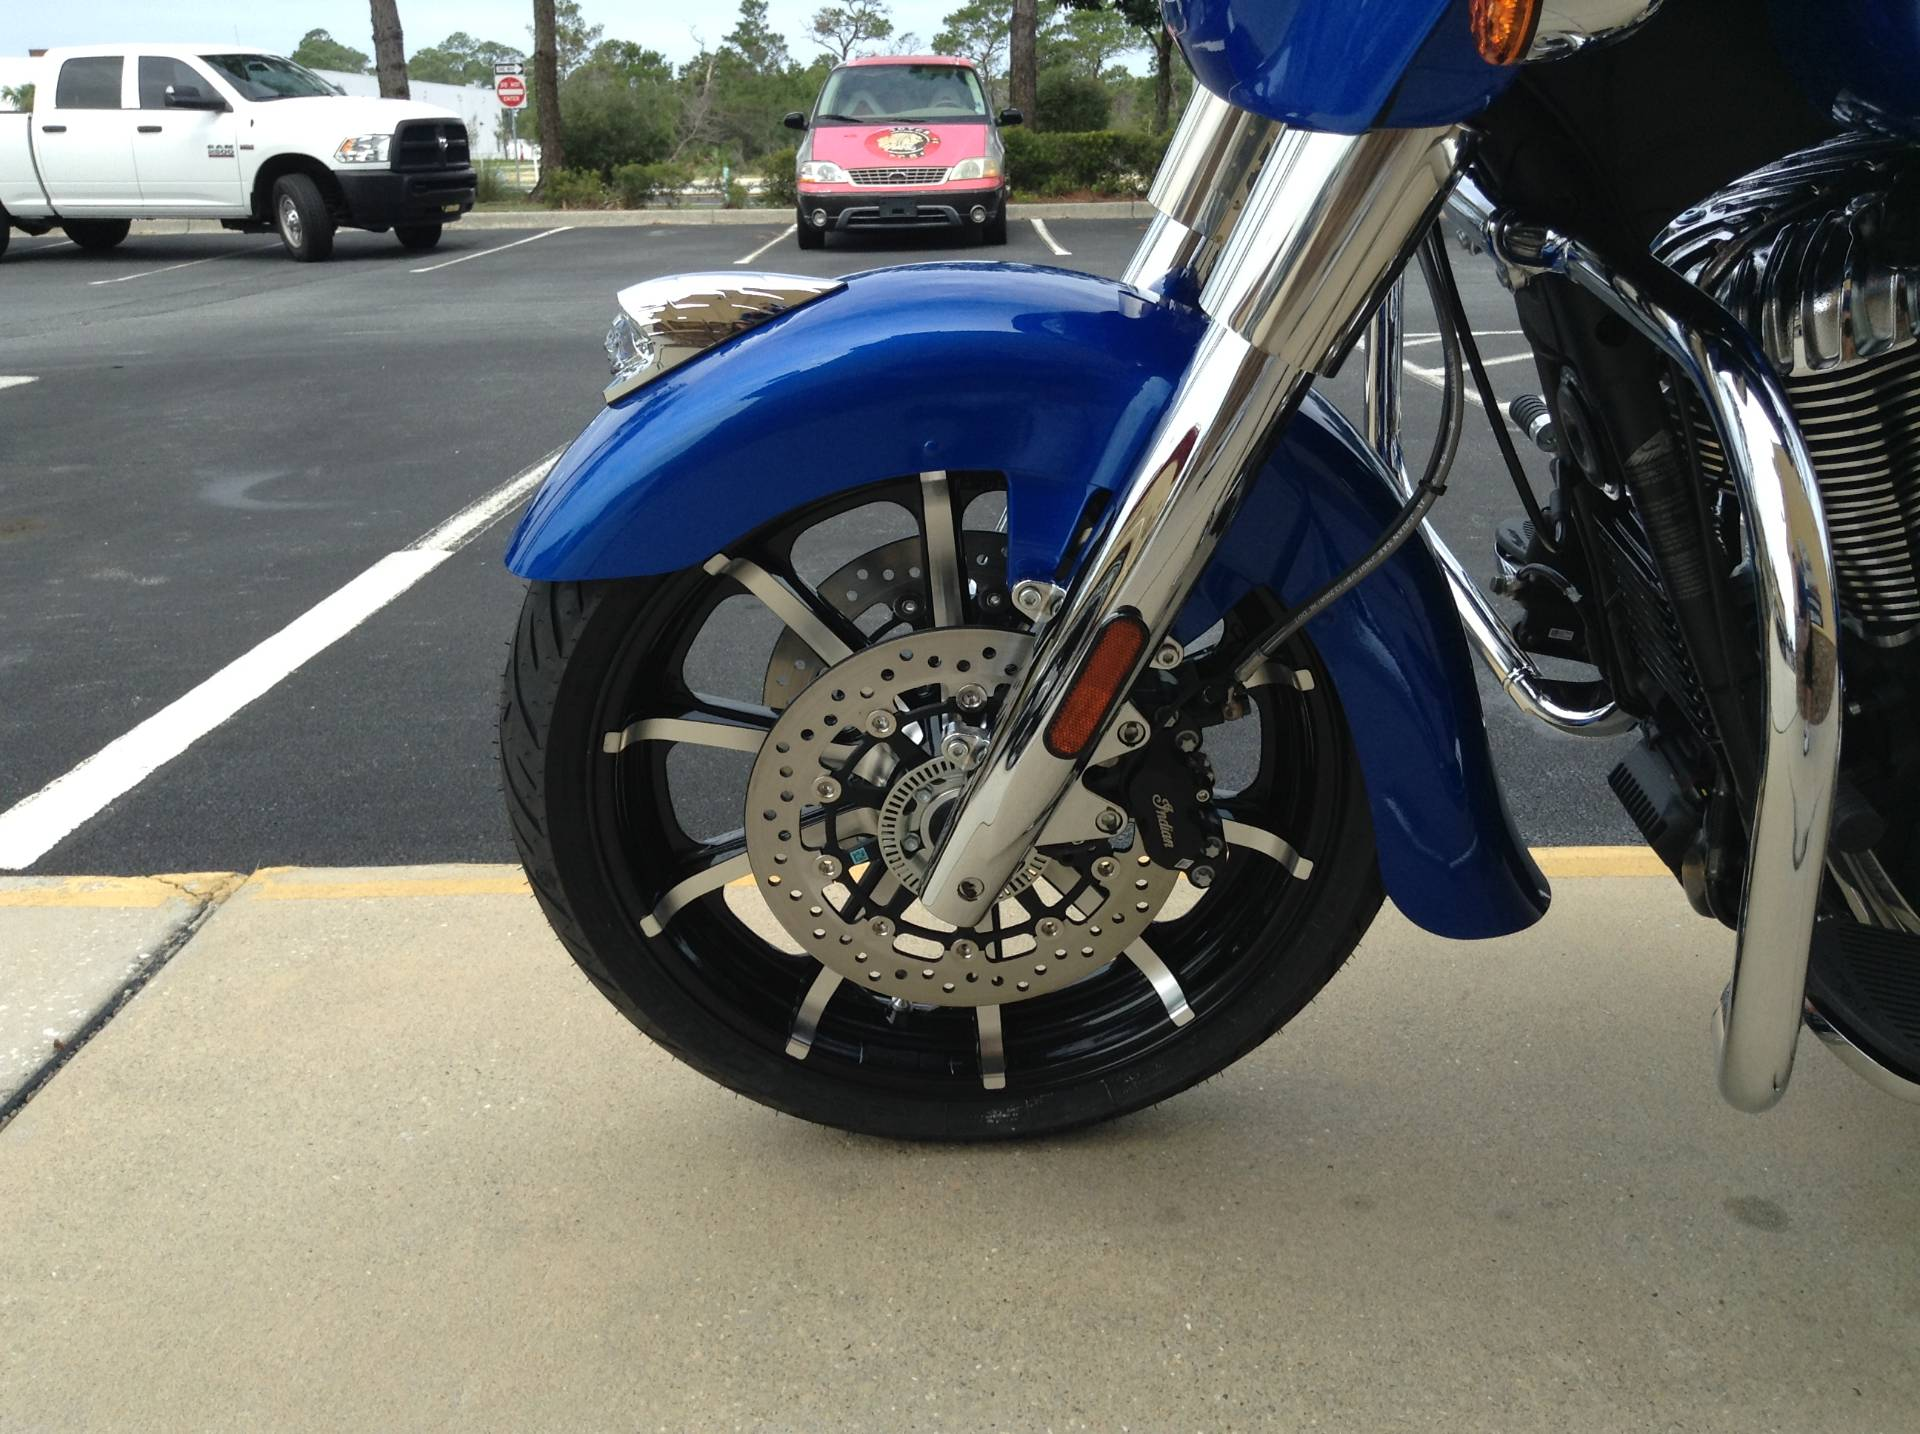 2021 Indian CHIEFTAIN LIMITED in Panama City Beach, Florida - Photo 11